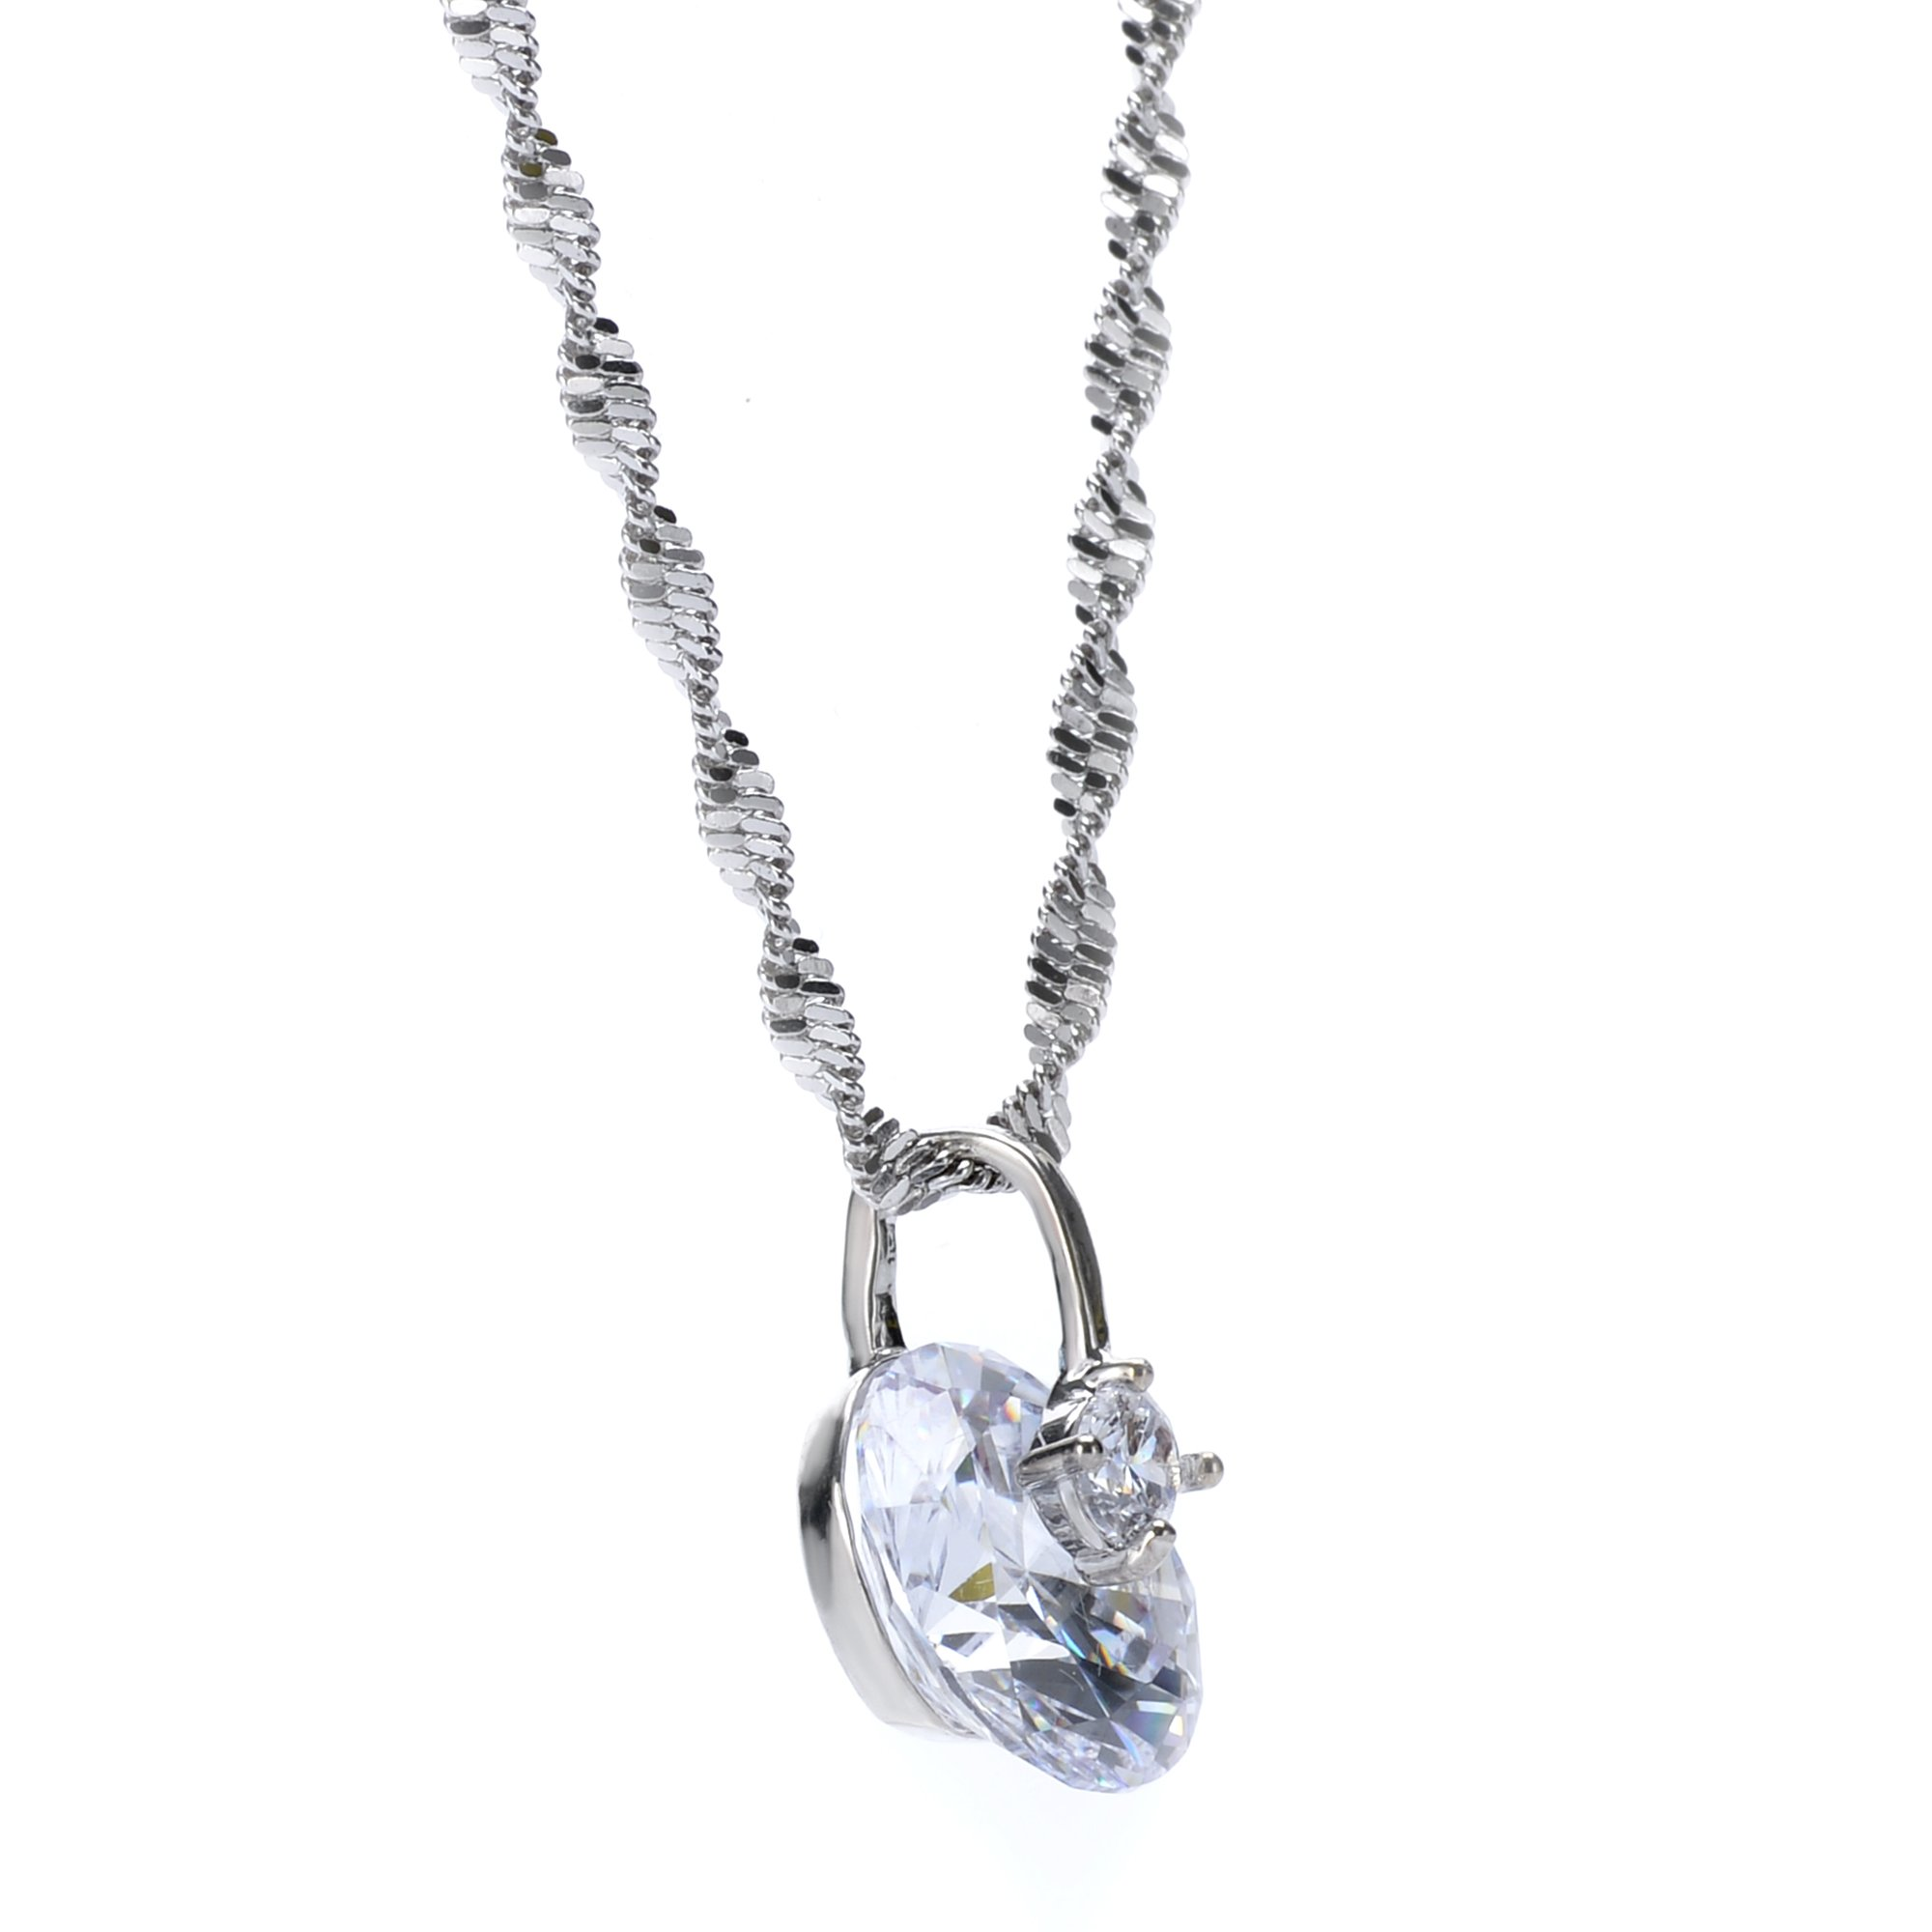 14K White Gold Plated - Cubic Zirconia Necklace for Women - Solitaire Pendant